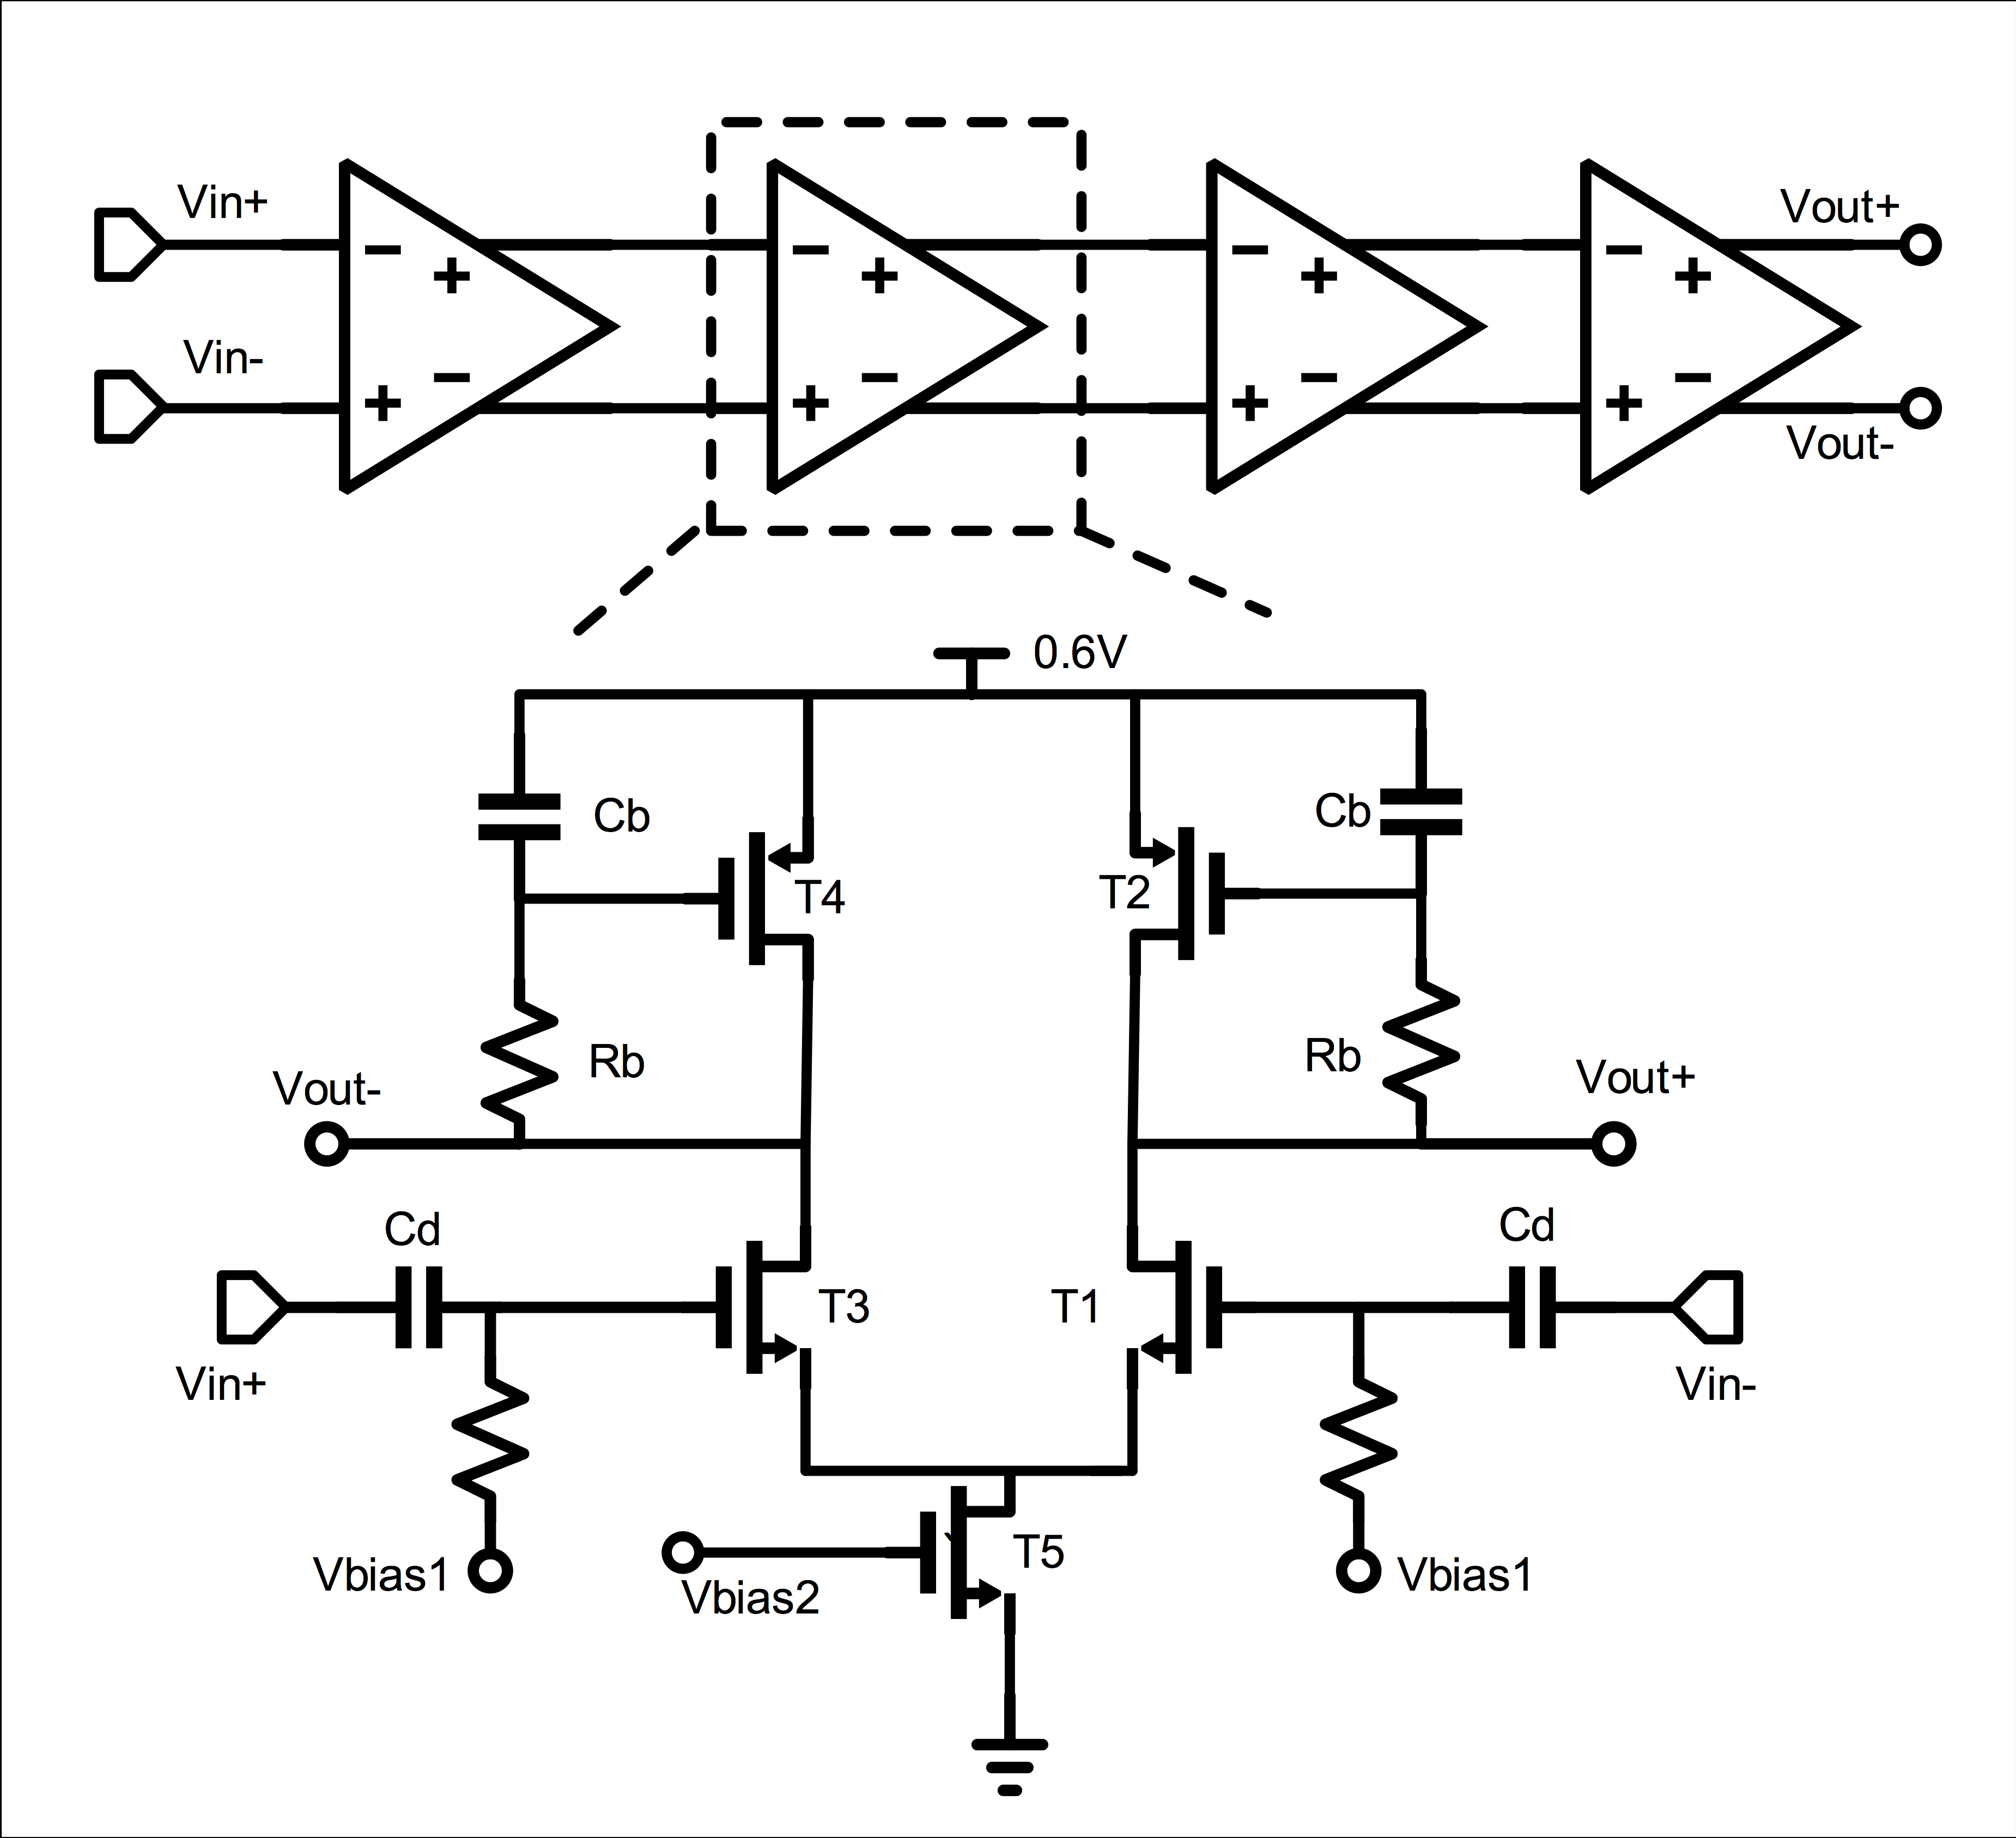 Schematic Fm Limiter Vk6wia News Broadcast Transceiver Circuits Fig Simplified Of Limiting Amplifier 3700x3373